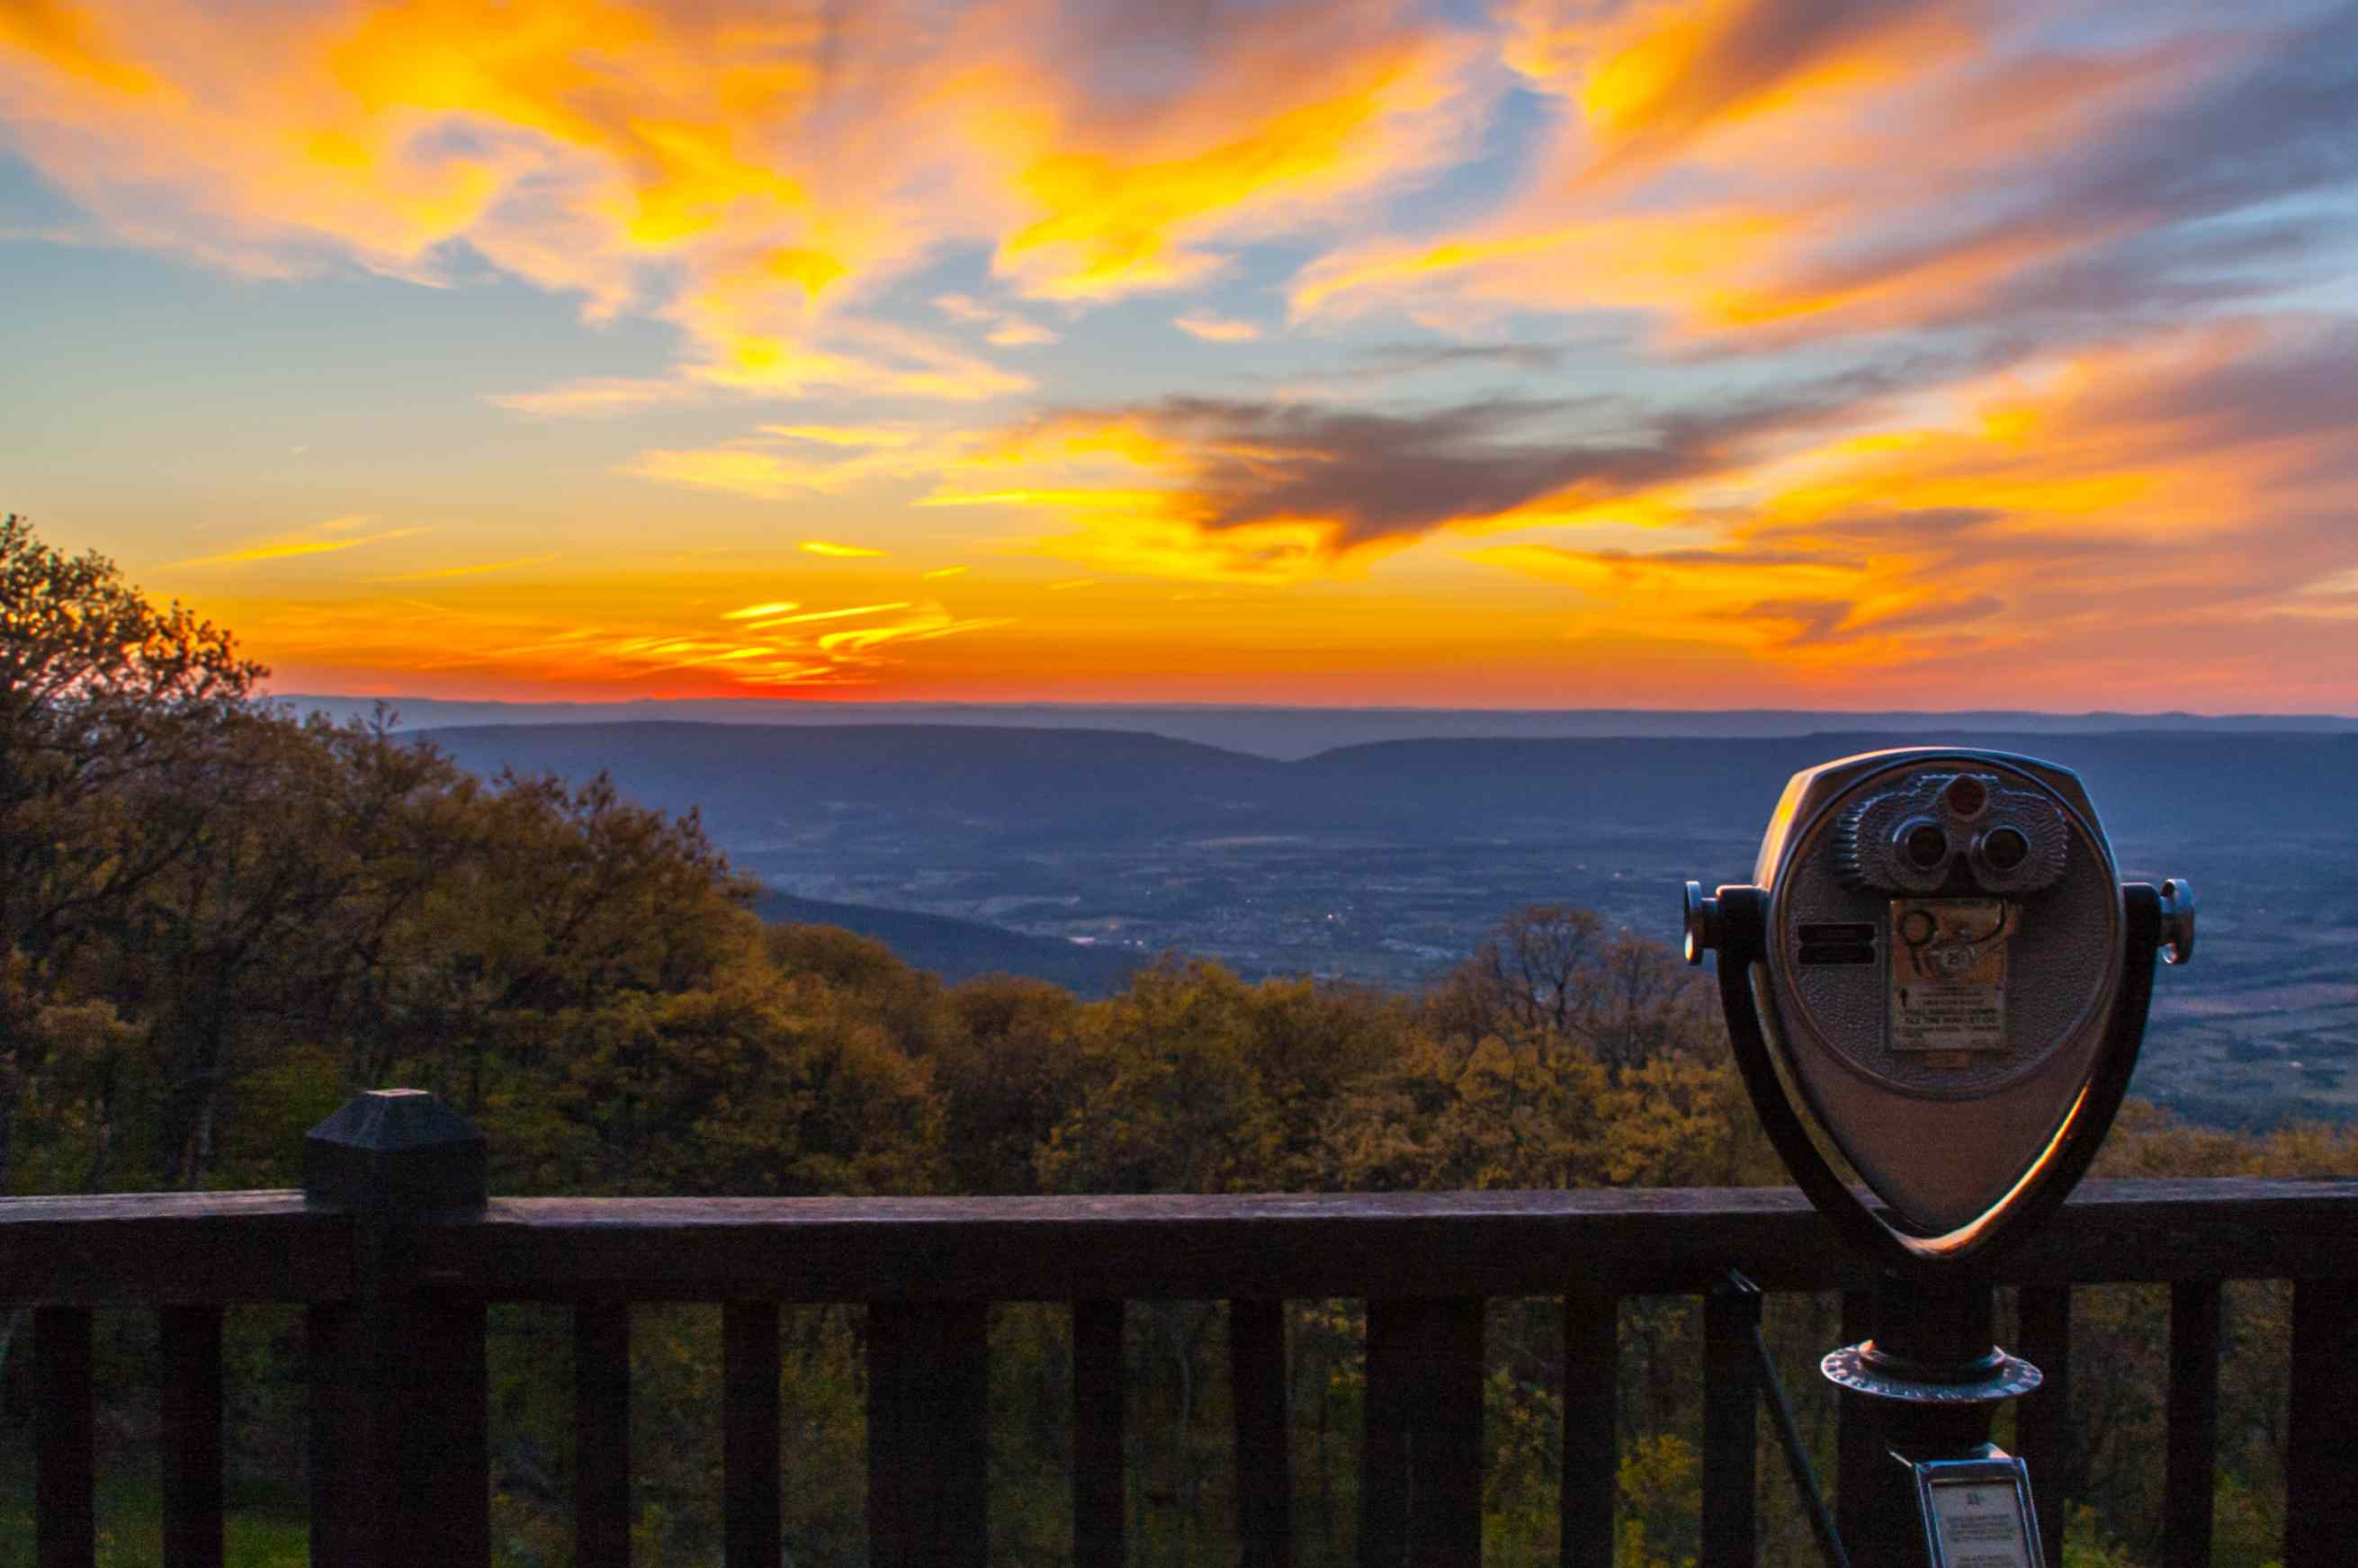 Vivid sunset over the Shenandoah Valley seen from an observation deck with a guardrail and coin-operated binocular